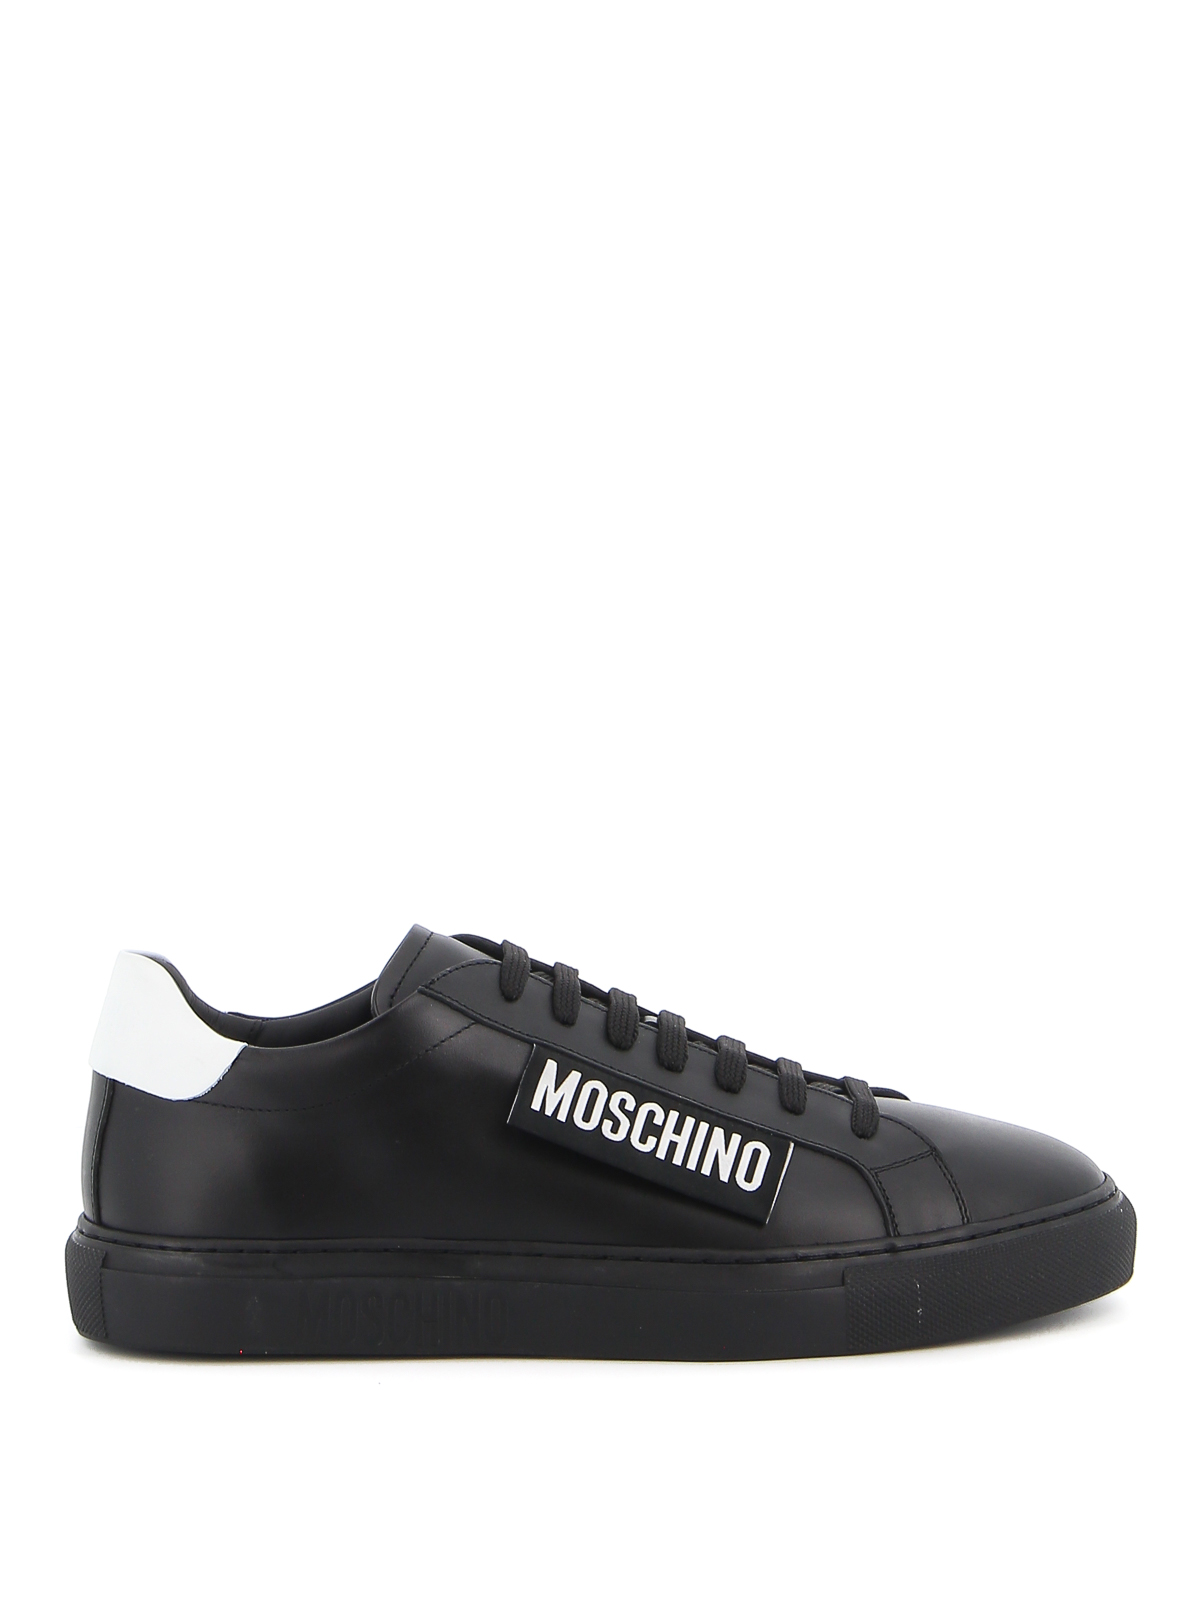 Moschino MOSCHINO LABEL SMOOTH LEATHER SNEAKERS